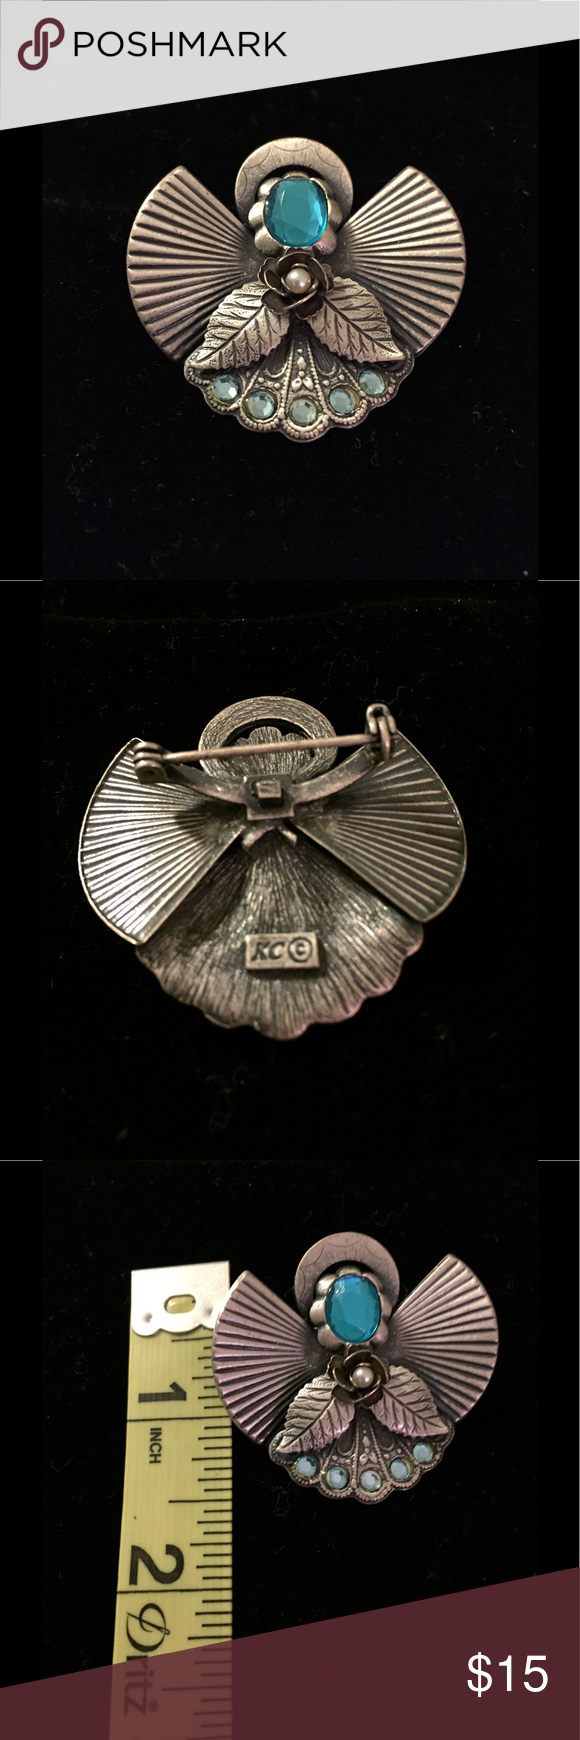 Kc Jewelry Mark : jewelry, Vintage, Angel, Brooch, Jewelry,, Brooch,